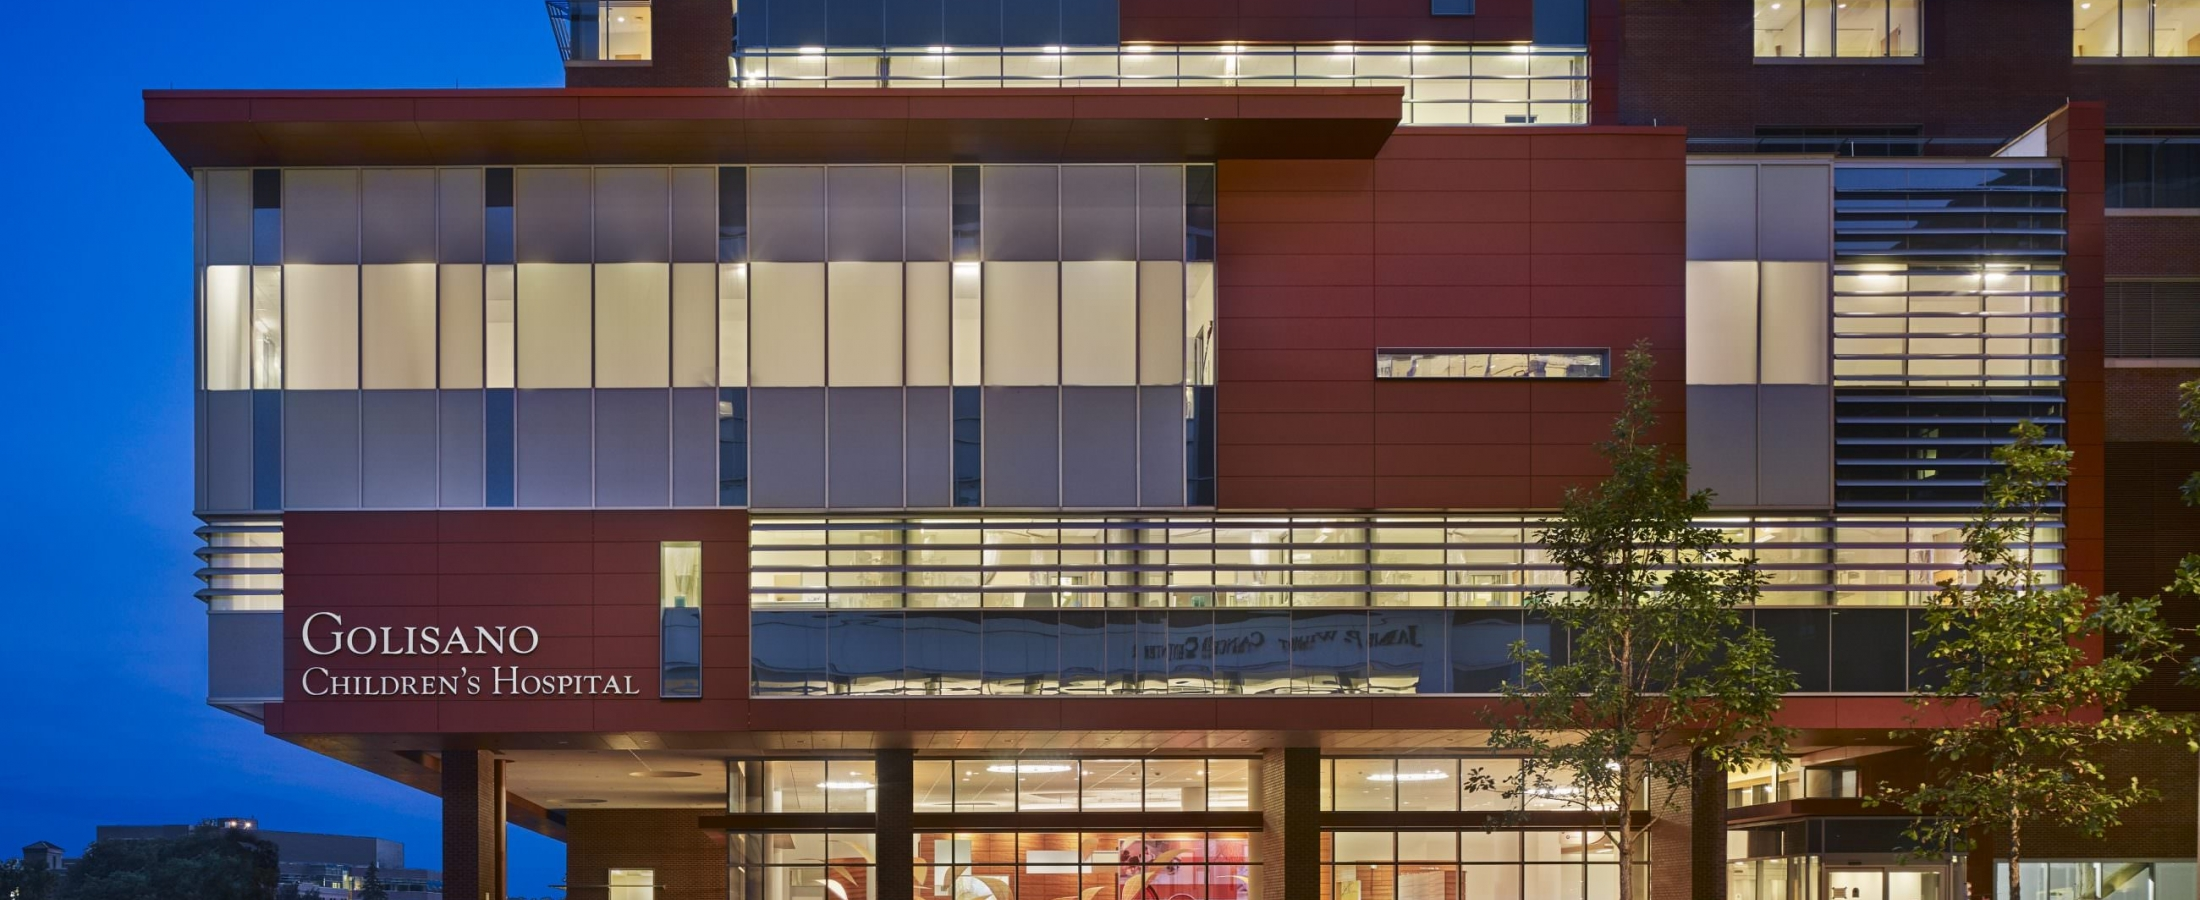 Cladding Corp Golisano Children's Hospital Swisspearl Fiber Cement Rainscreen Facade